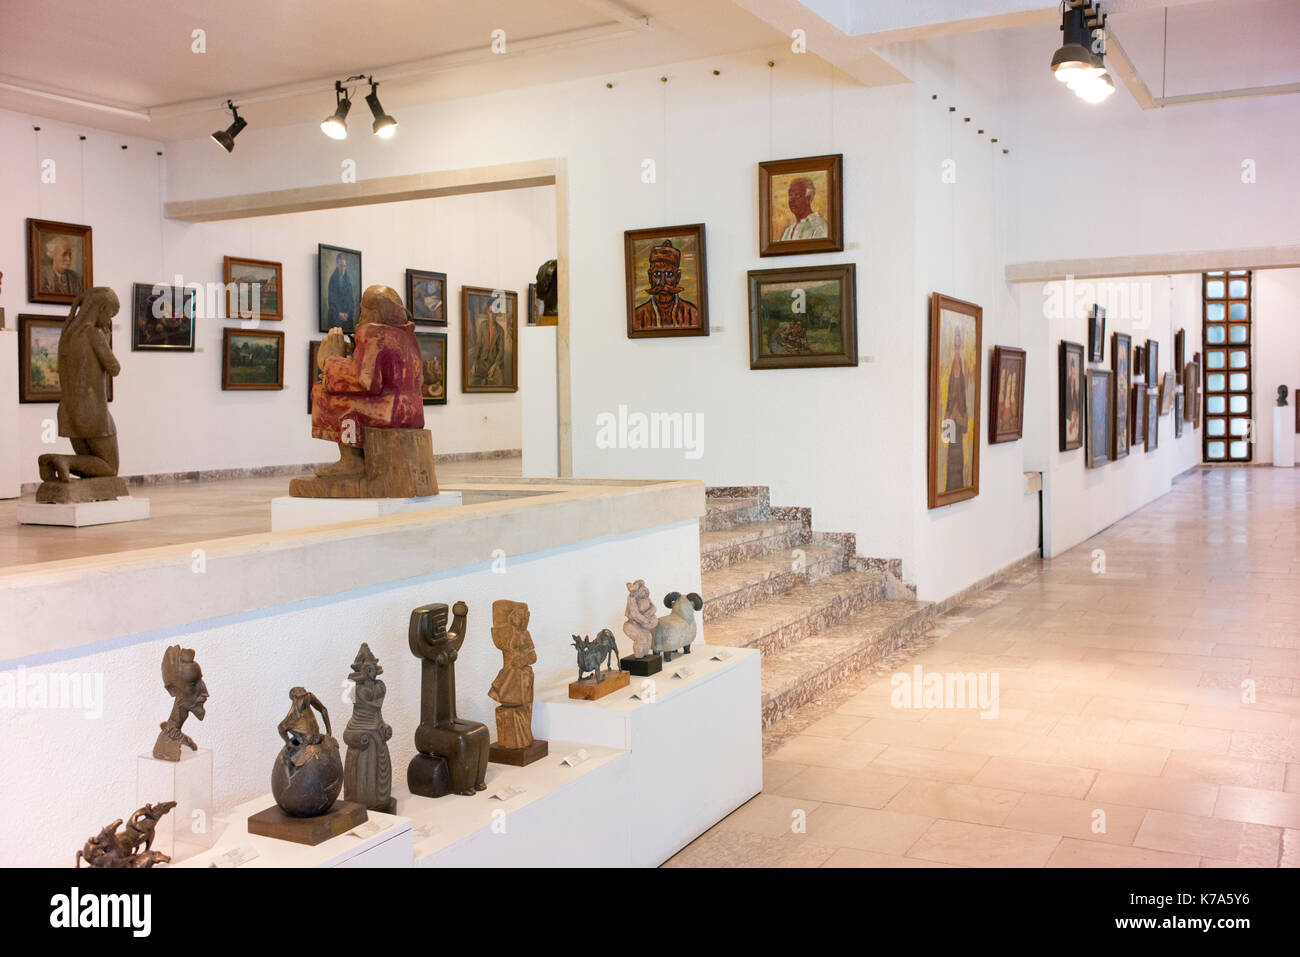 Various displays inside the Kazanlak Art Museum. - Stock Image